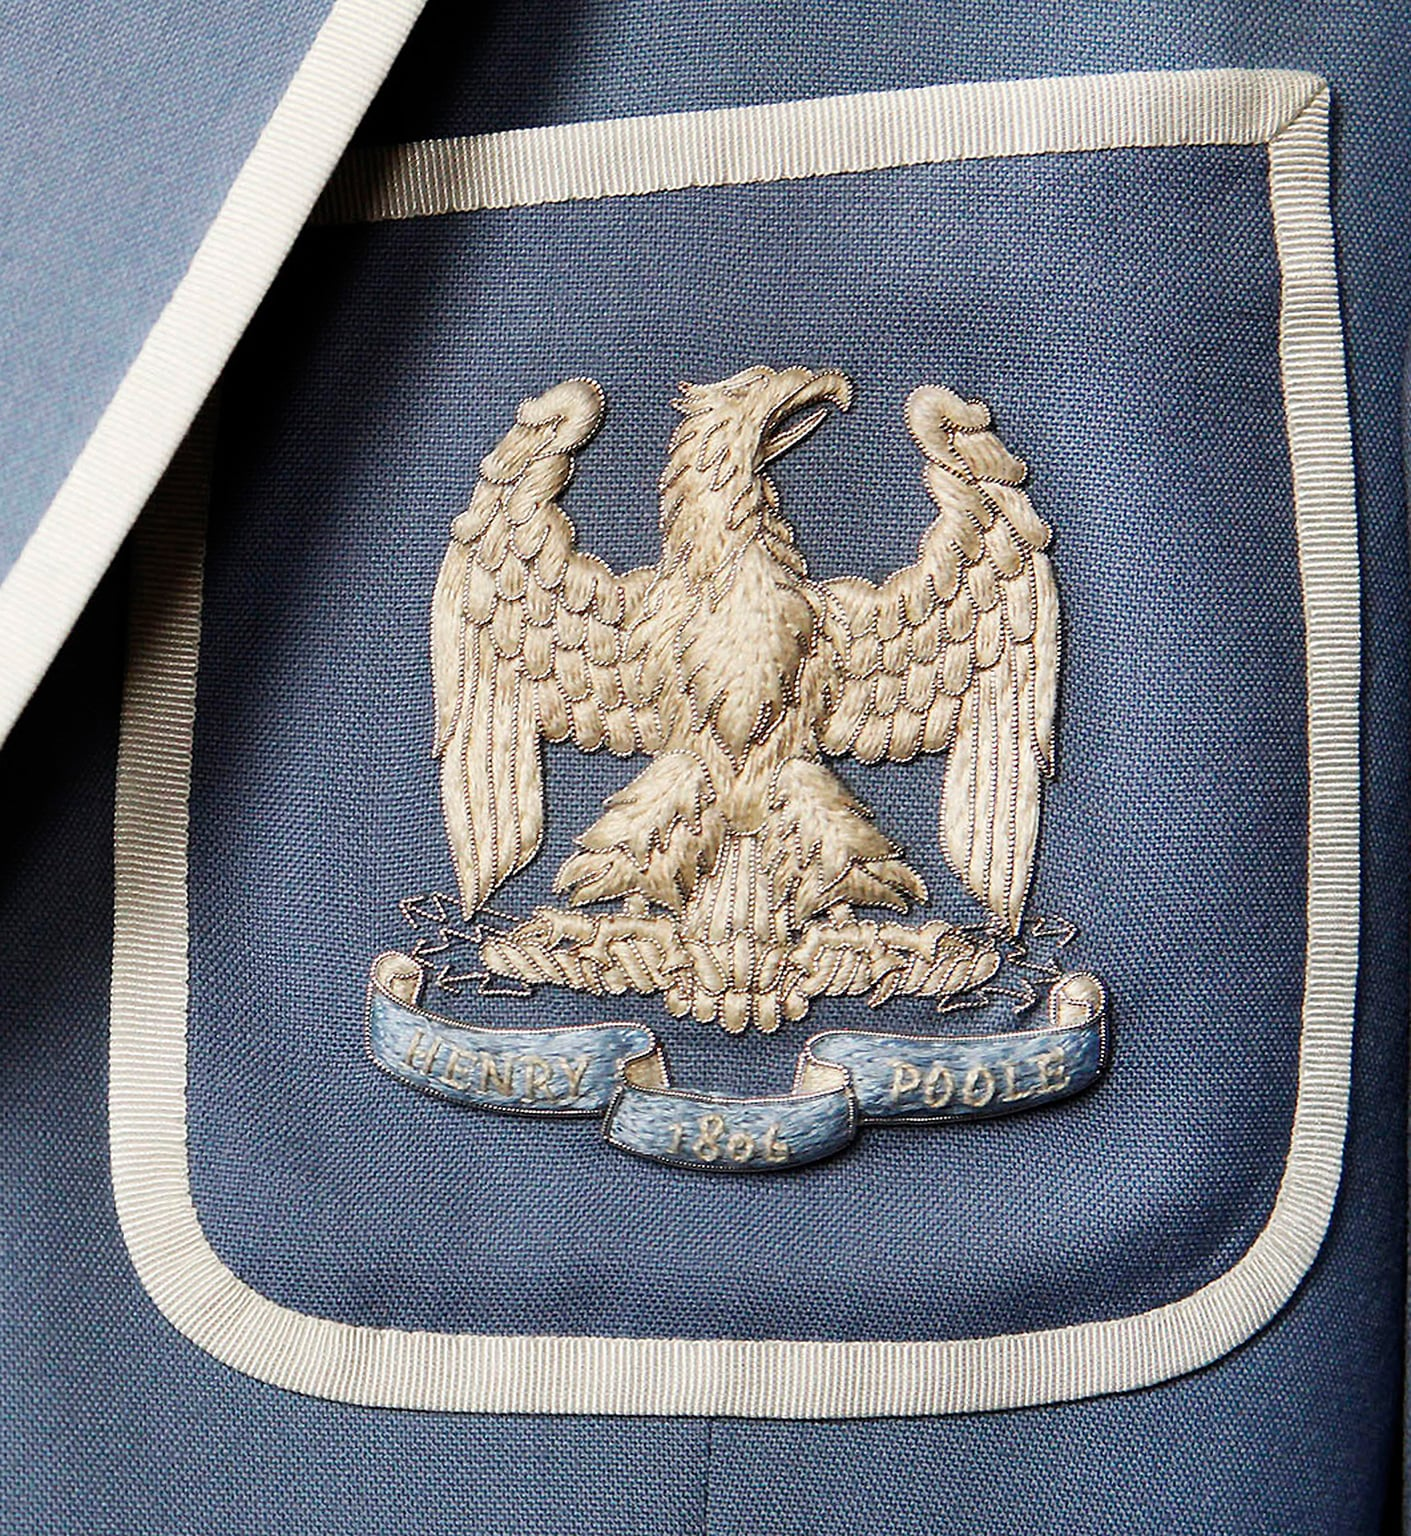 Wedgwood blue blazer with Napoleonic eagle embroidered on the outbreast patch